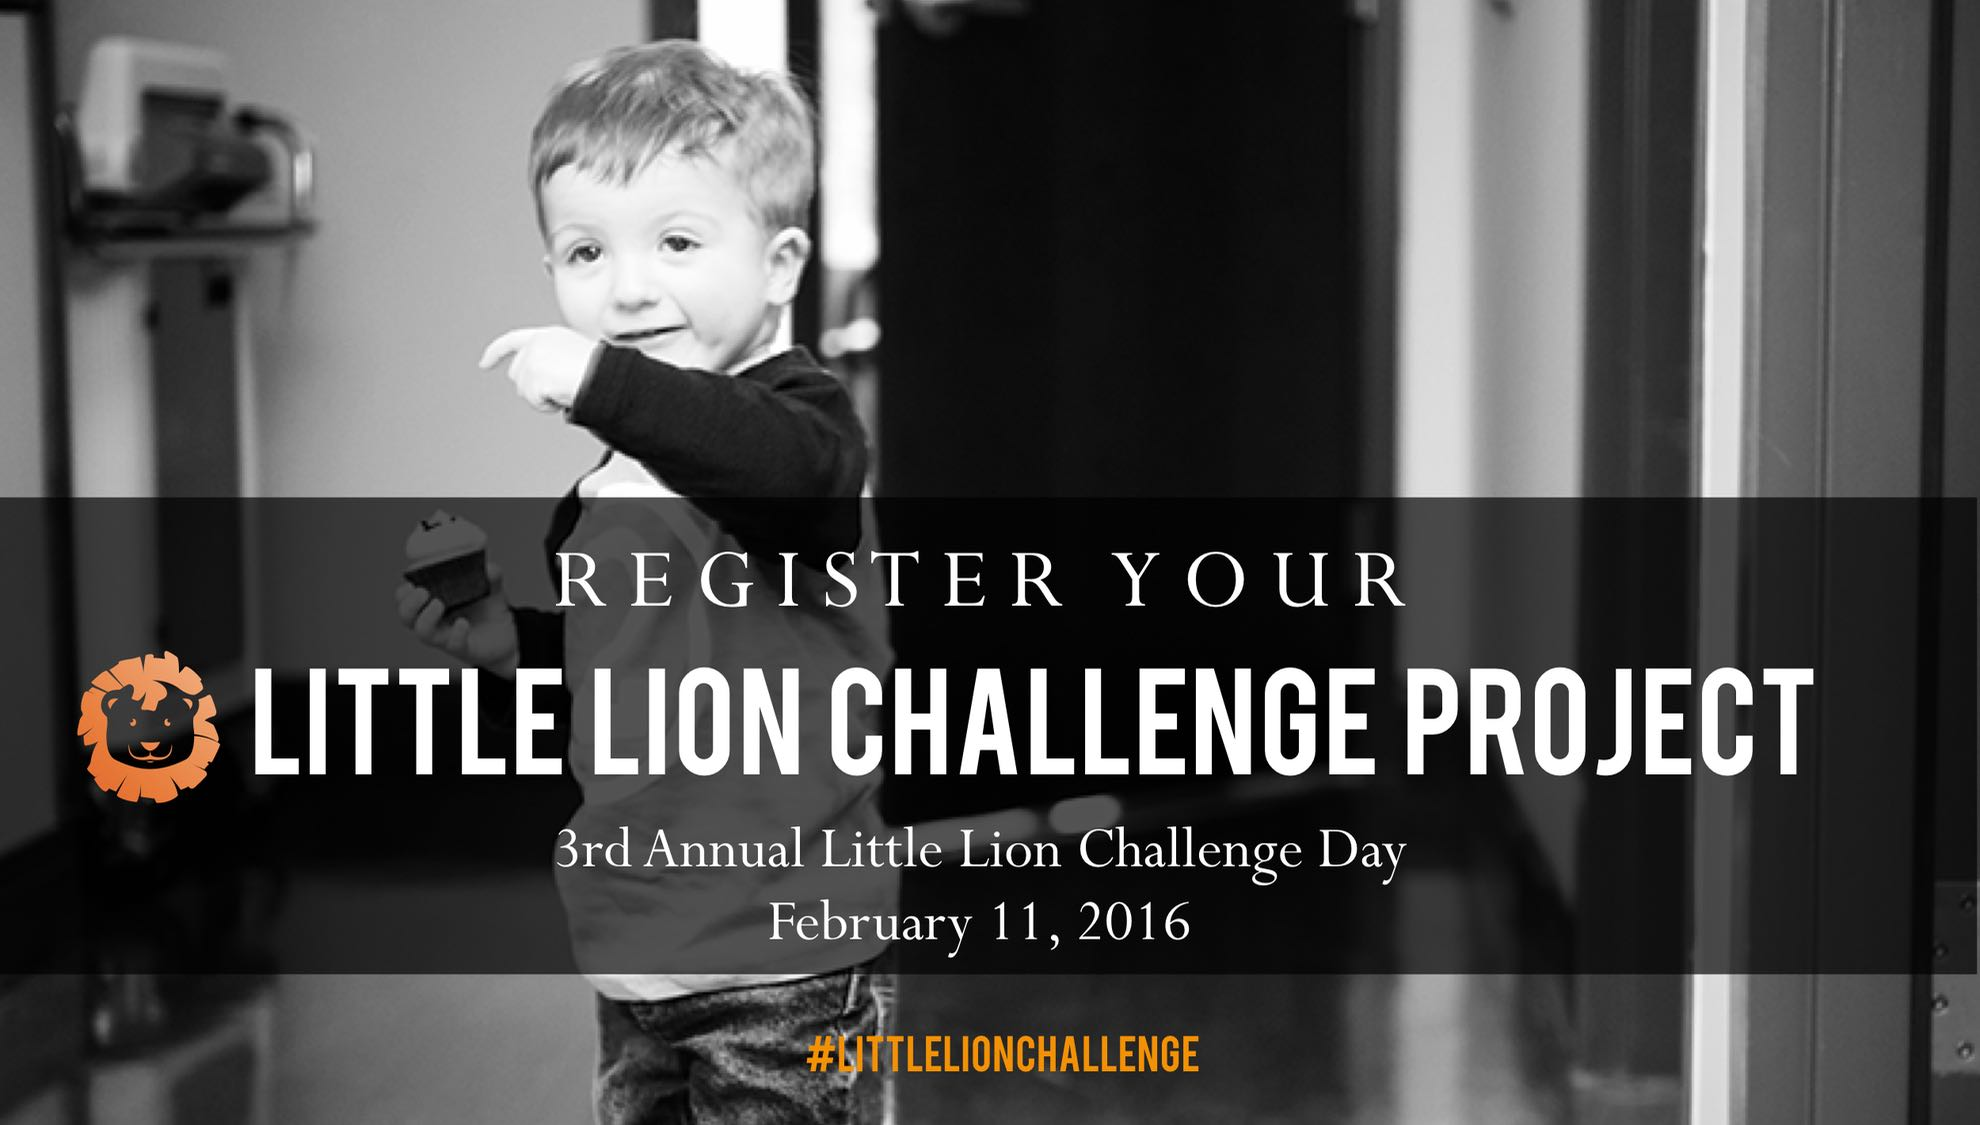 Register Your Little Lion Challenge Day Project